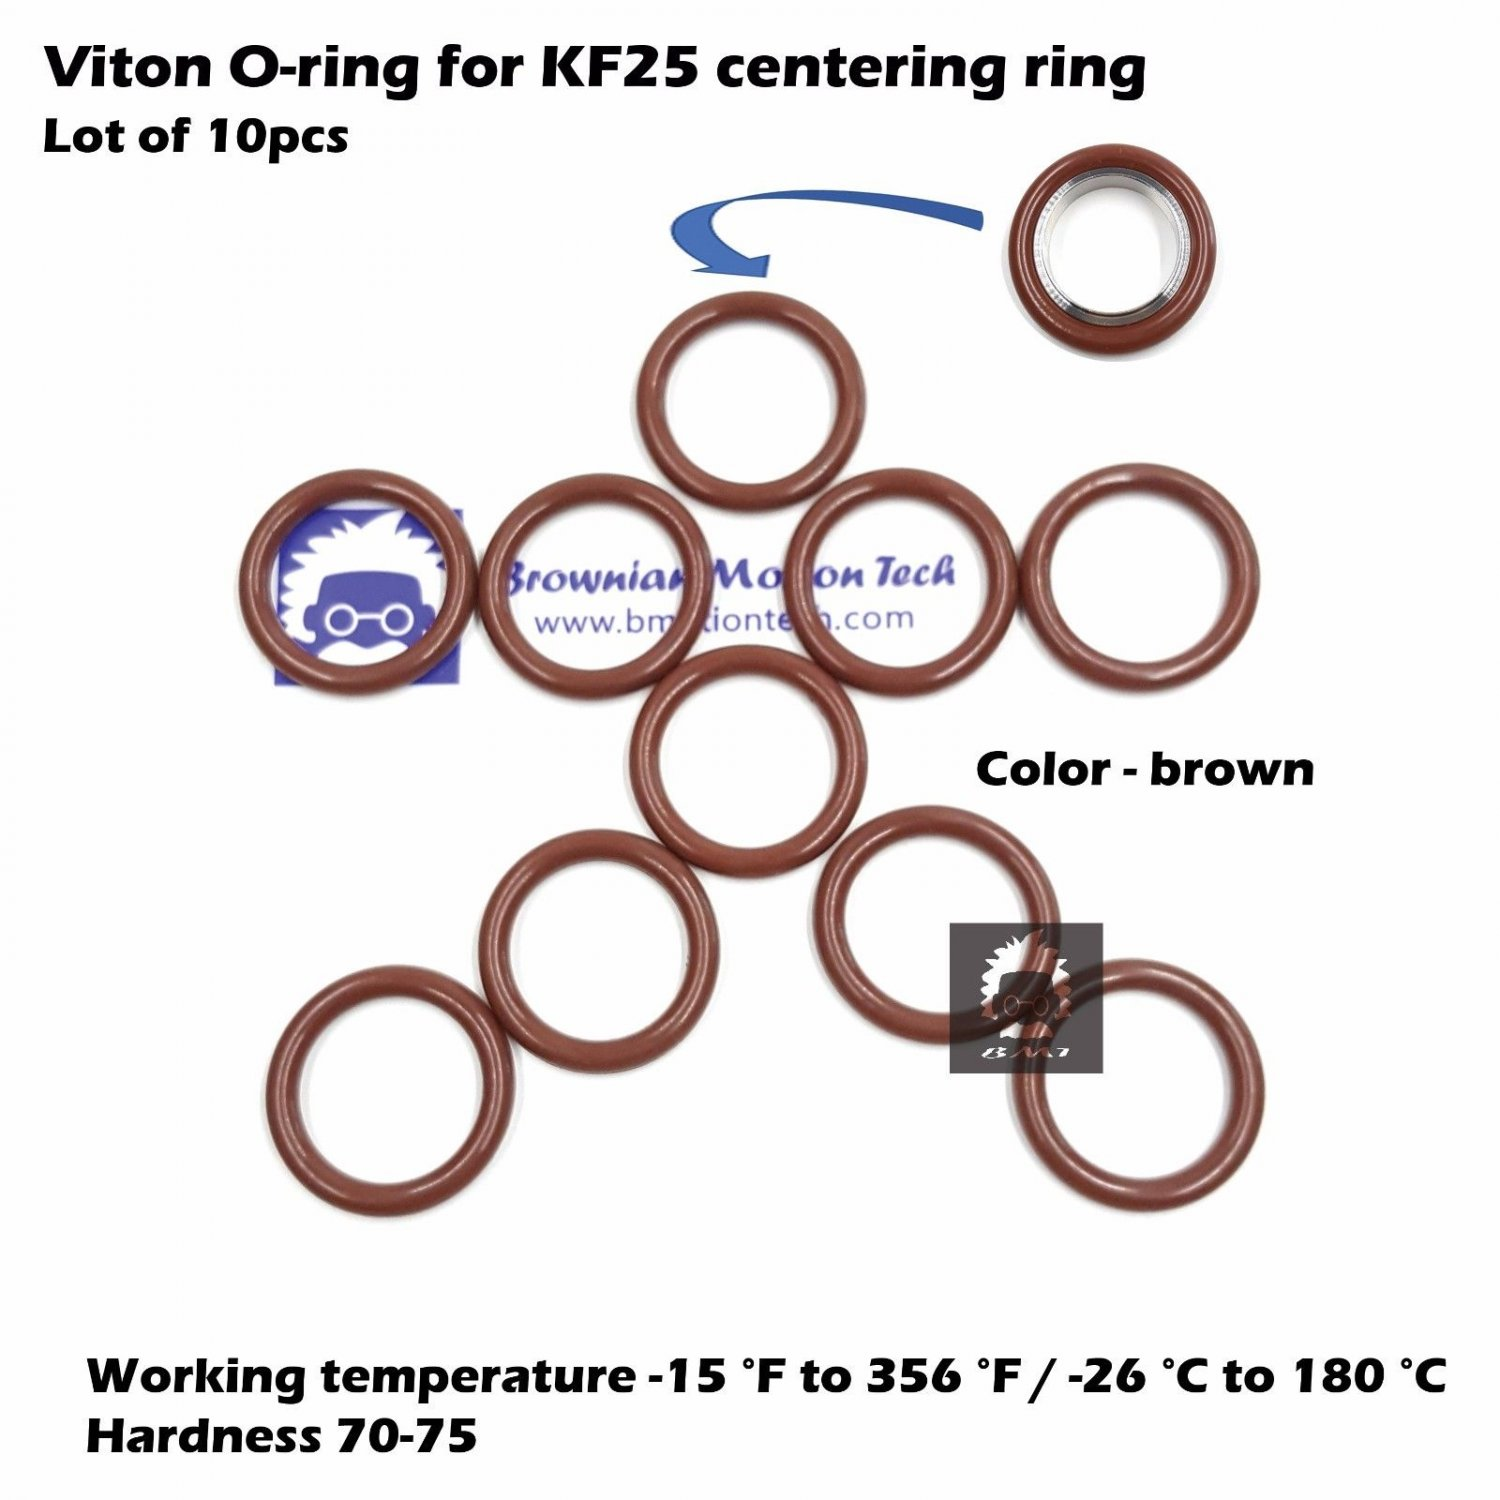 10 pcs KF25 flange centering ring O-ring / Material = Viton / Size AS-320